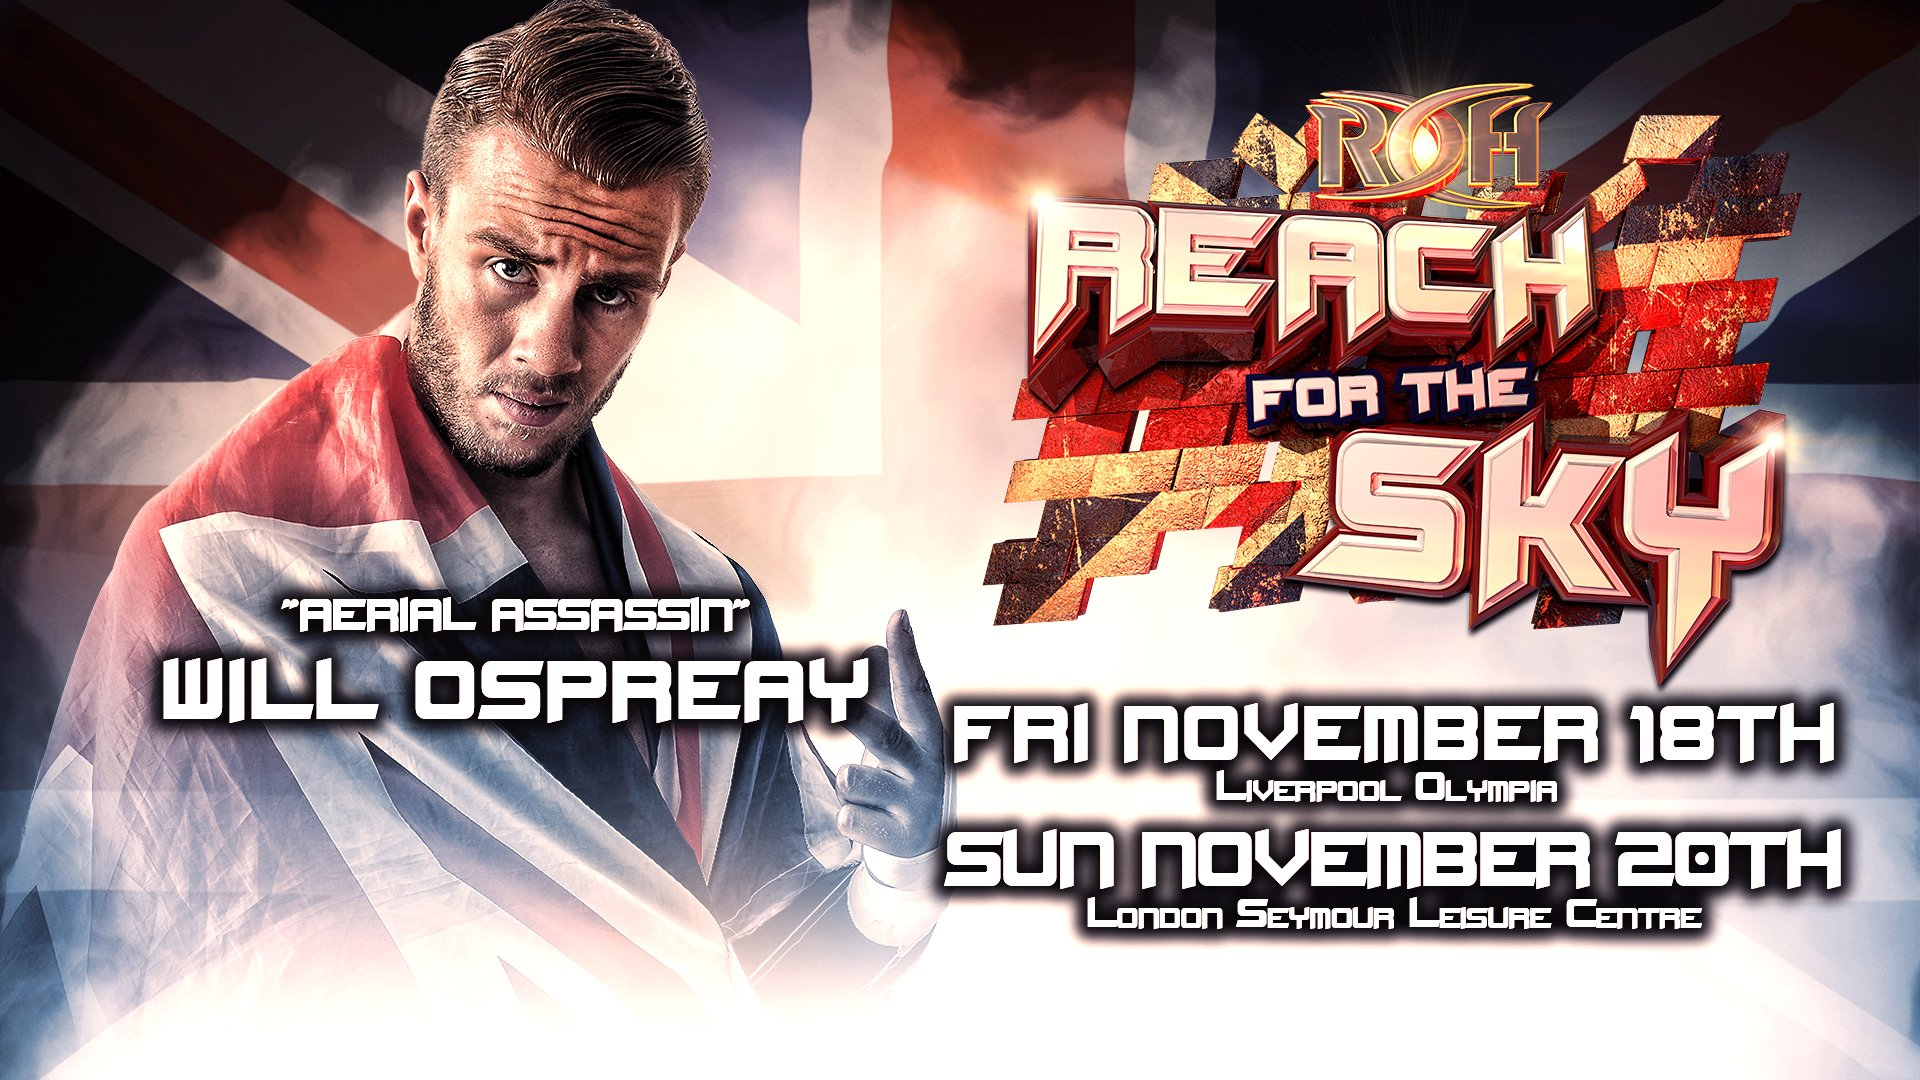 More Details on Will Ospreay Making Ring of Honor Debut WWE Makes 1920x1080